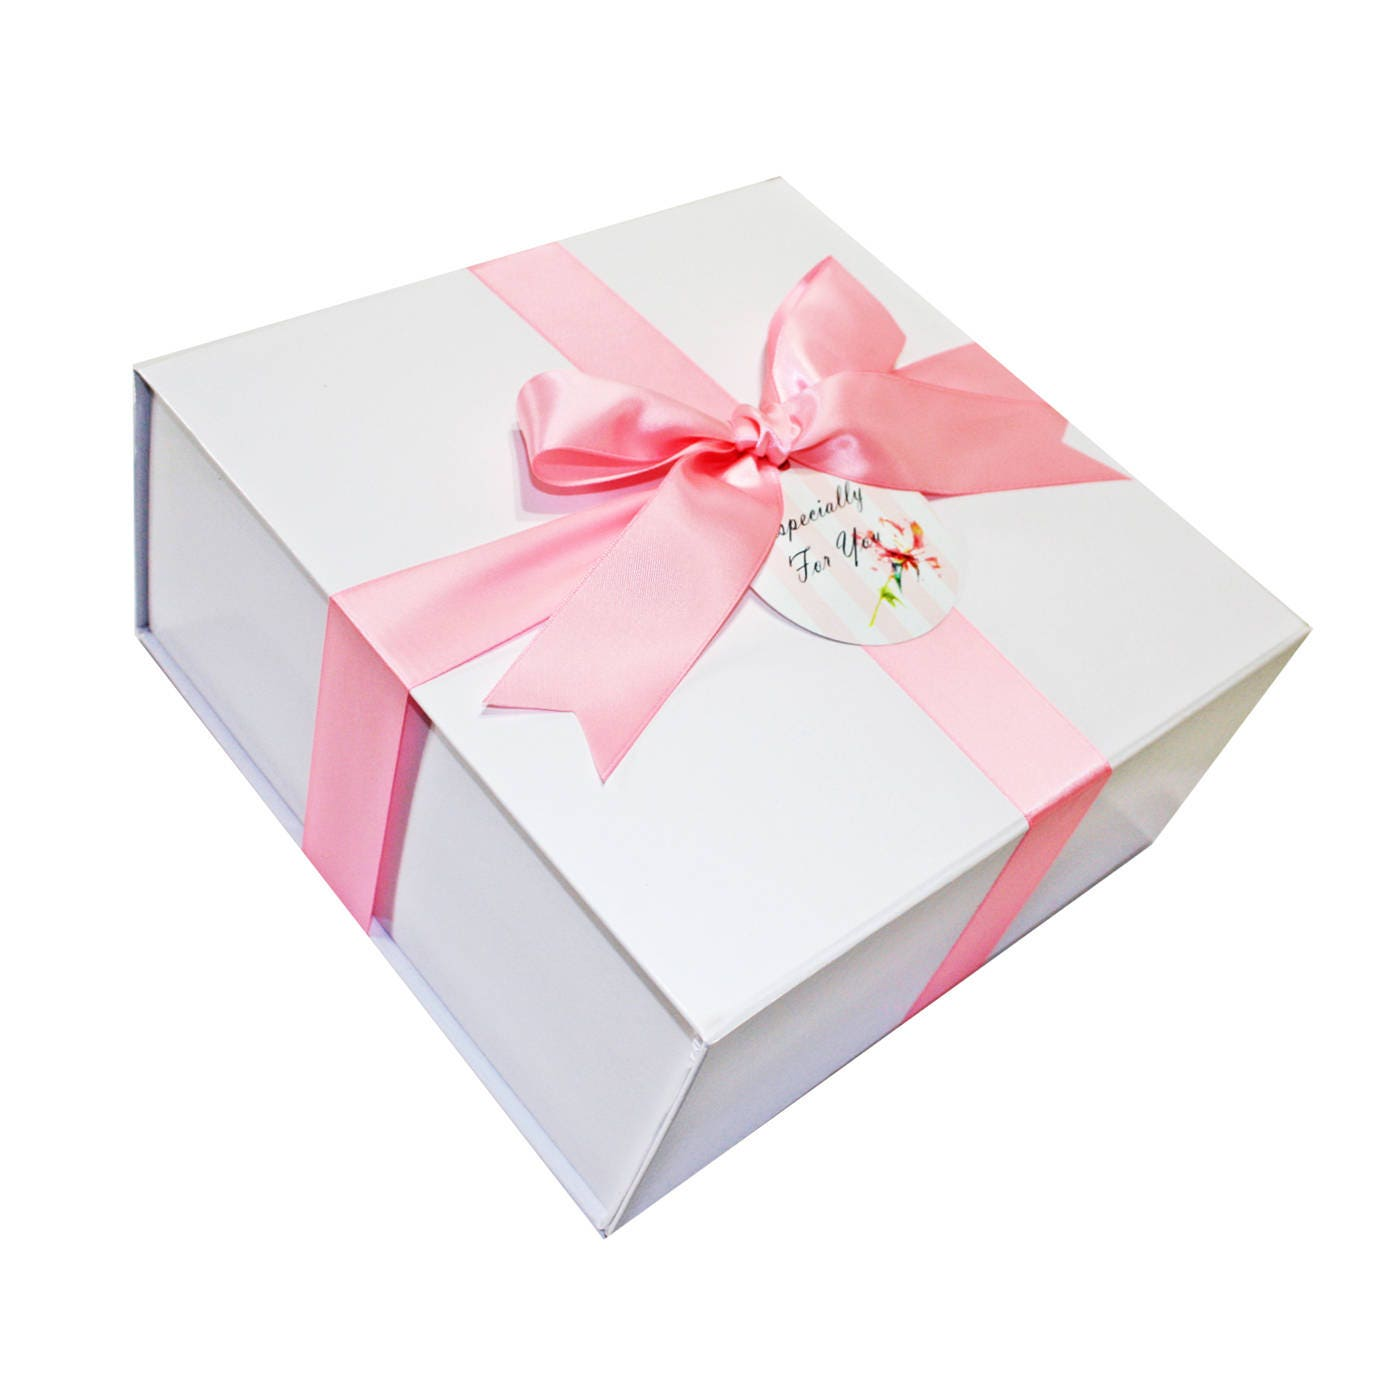 Elegant Gift Boxes with Mini Pies, Corporate Gifts, Holiday Gifts ...